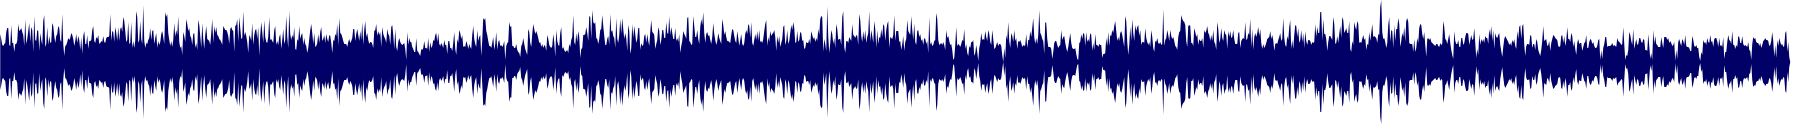 waveform of track #69614